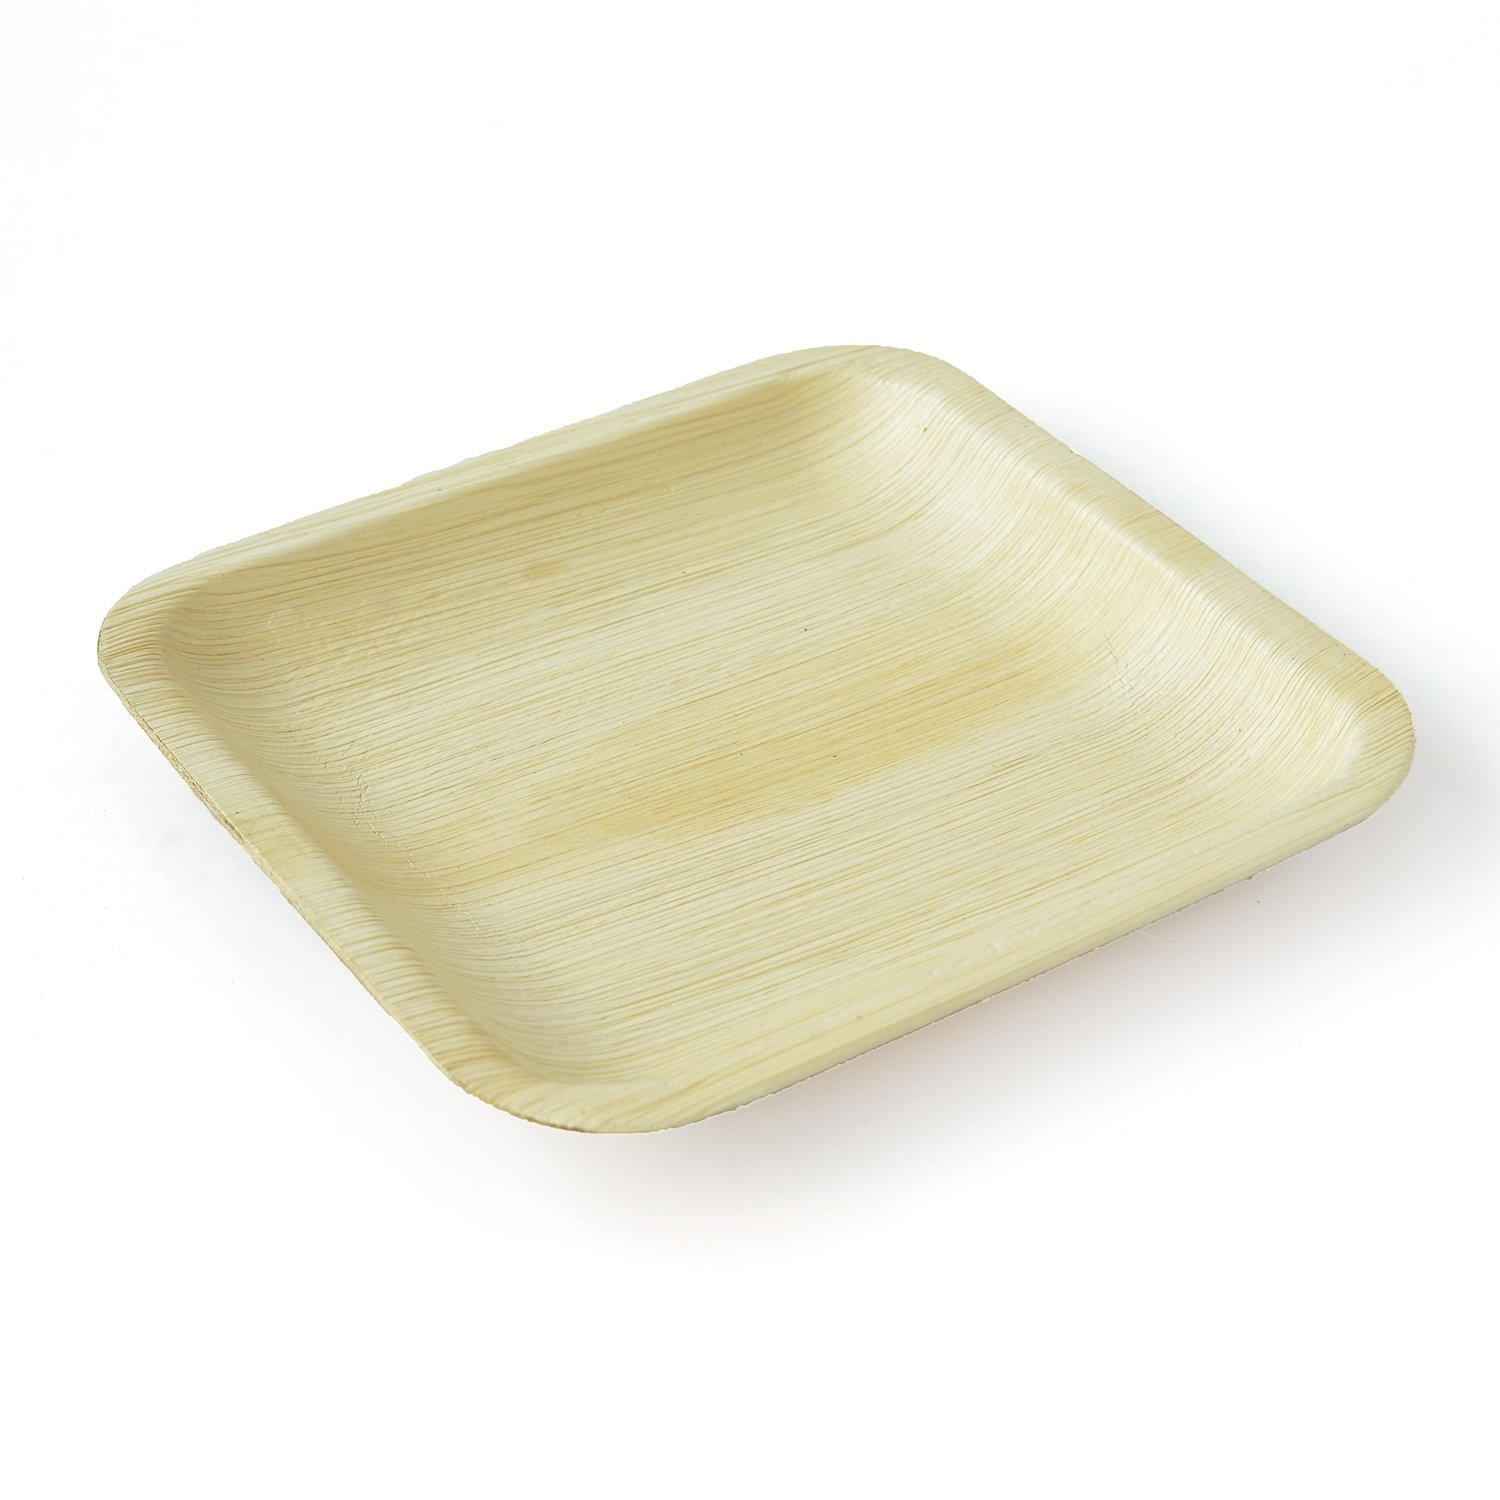 Leaftrend: Eco-friendly Disposable Palm Leaf Plates, Wedding and Party Plates, 8 Inch Square with Rib Plate - 25 Pcs